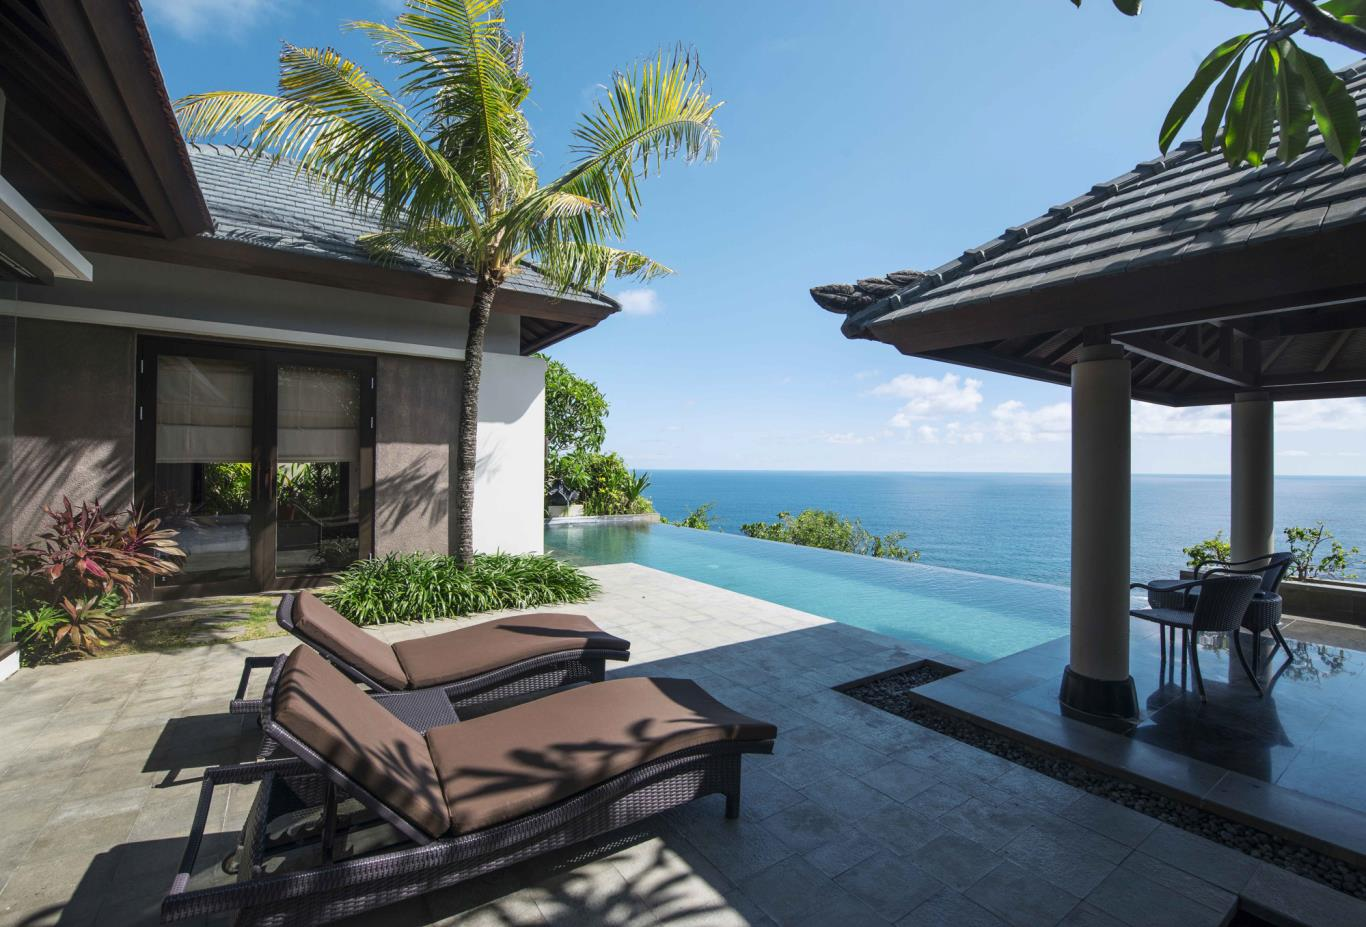 Pool Villa Cliff Edge